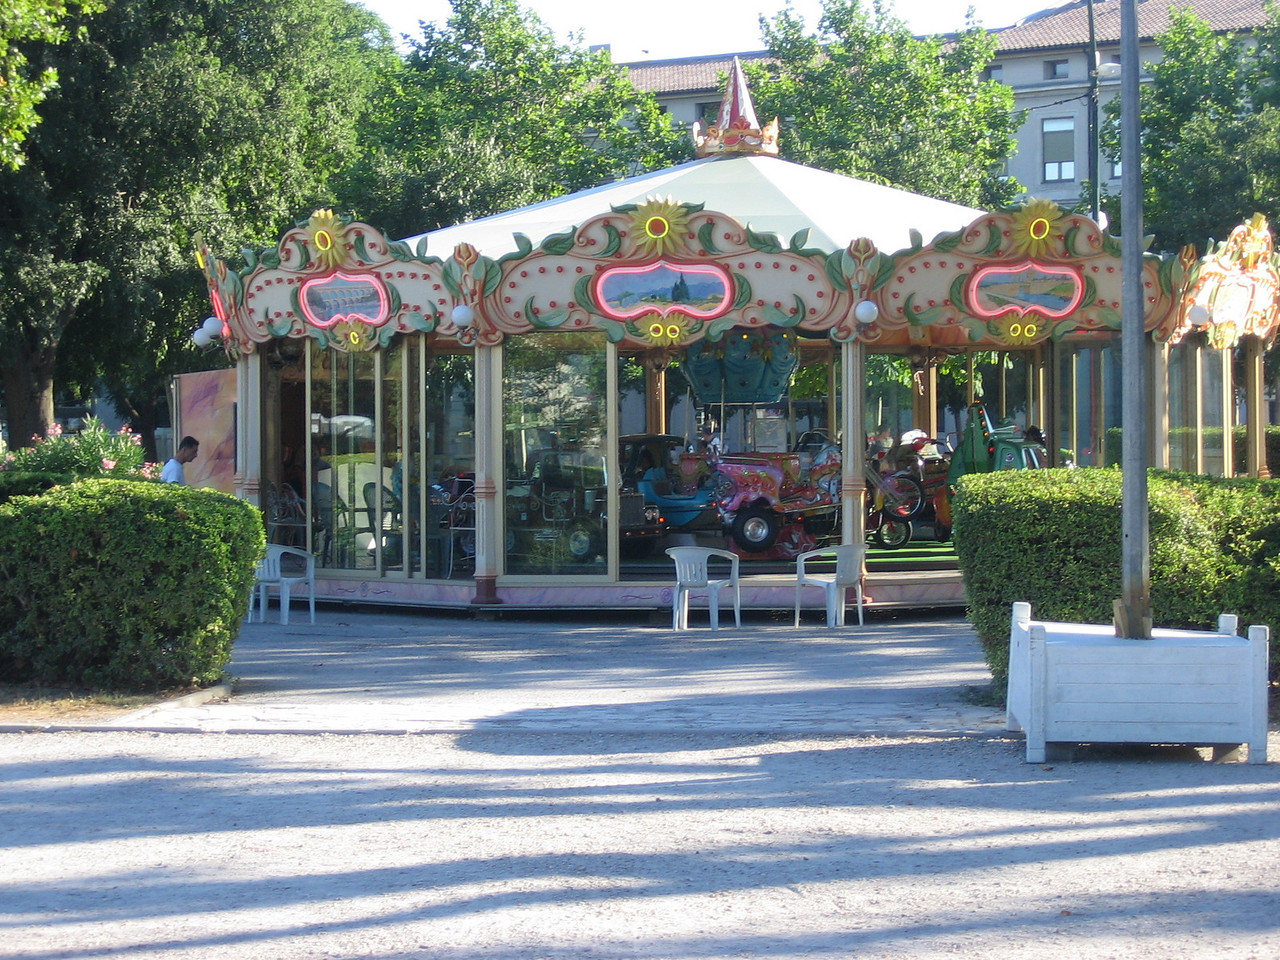 Every french town seems to have at least 1 carosel.